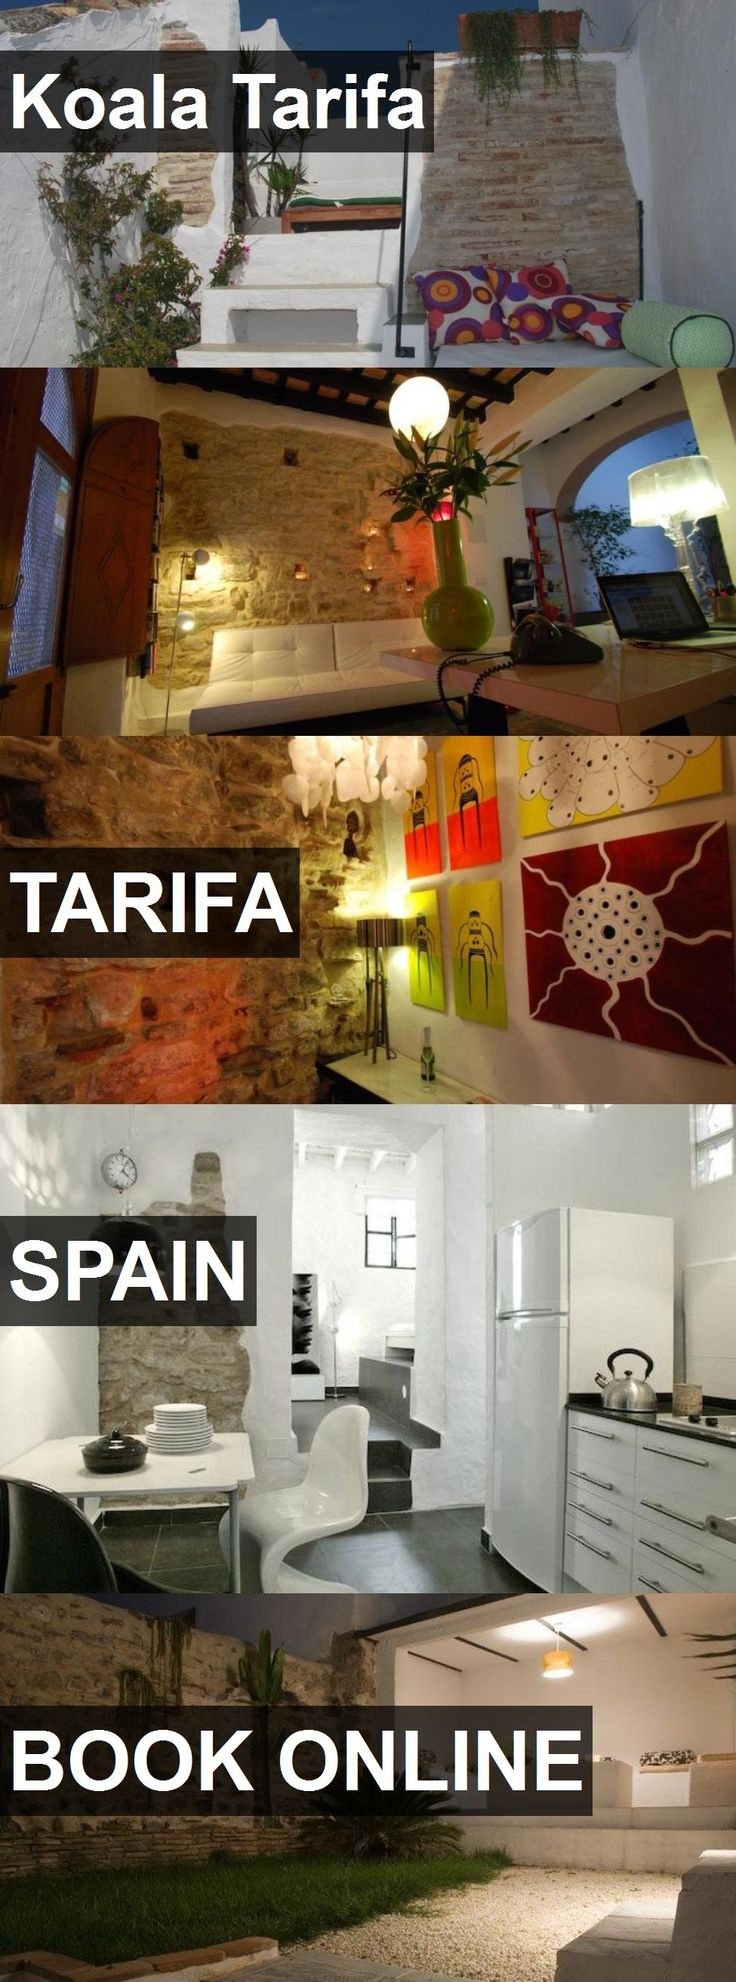 Hotel Koala Tarifa in Tarifa, Spain. For more information, photos, reviews and best prices please follow the link. #Spain #Tarifa #travel #vacation #hotel